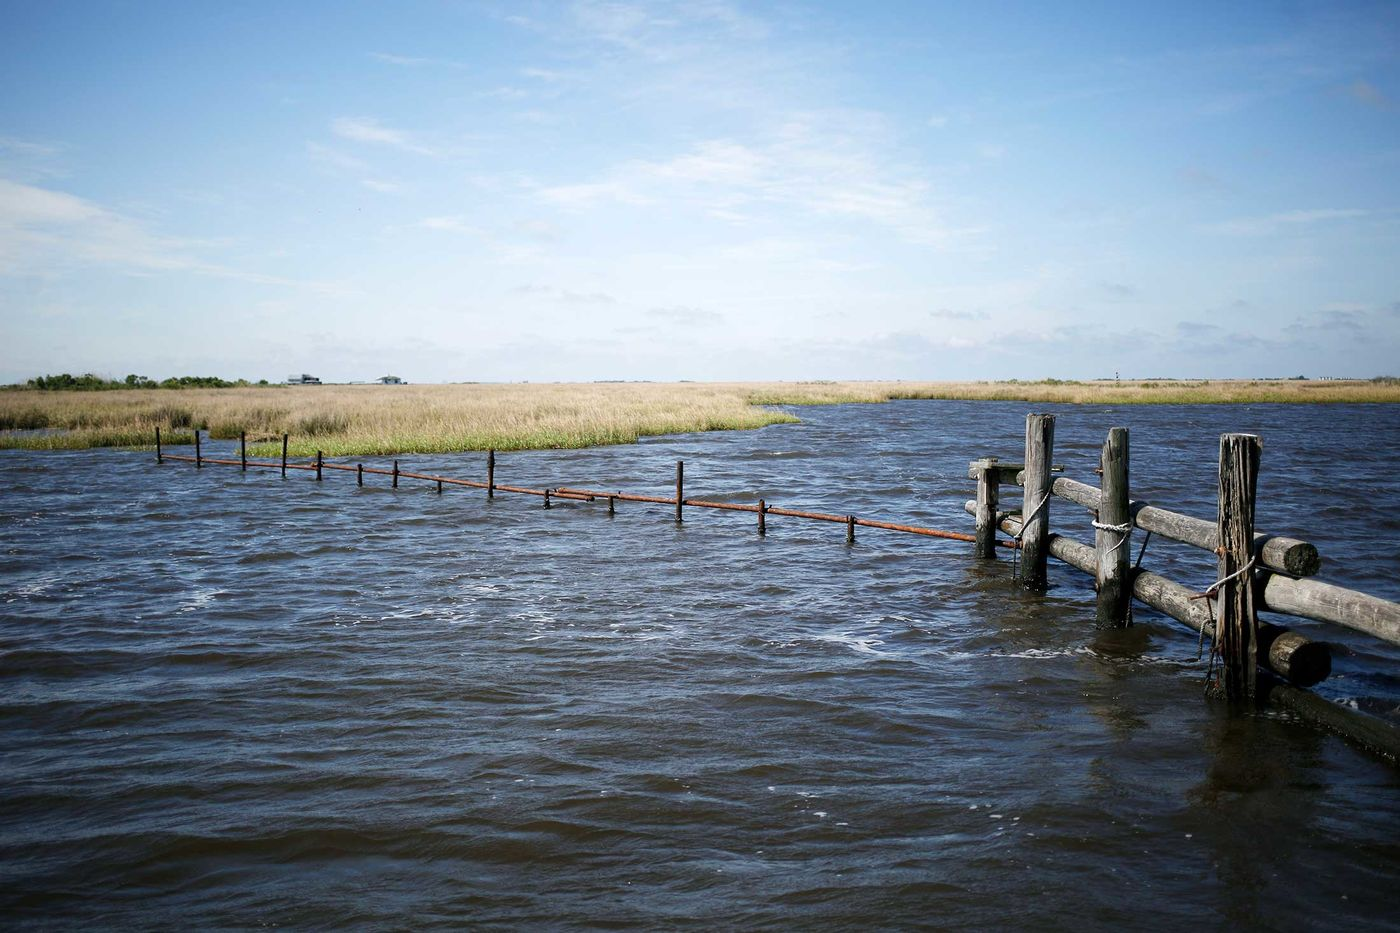 Public access to this waterway near Grand Isle is hindered by a private property owner's fence.